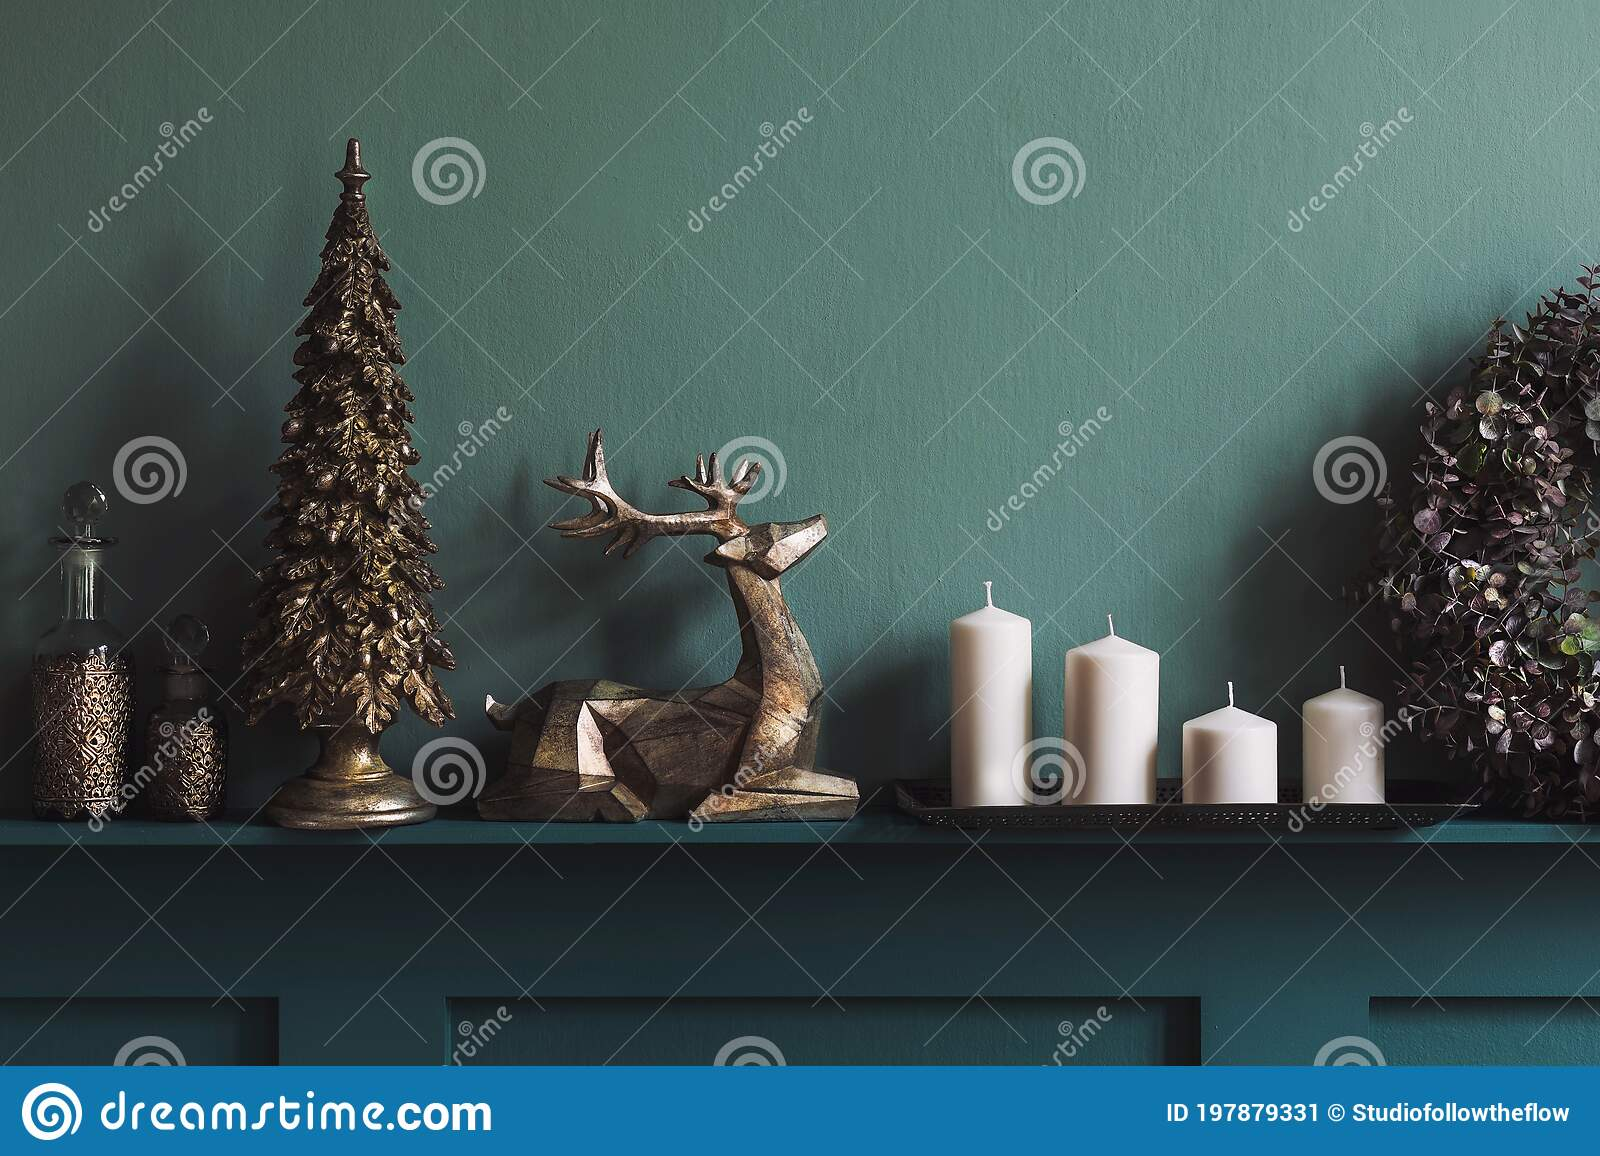 Christmas Composition On The Green Velvet Pouf In Living Room Beautiful Decoration Christmas Trees Candles Stars Lights Stock Image Image Of Fire Joyful 197879331